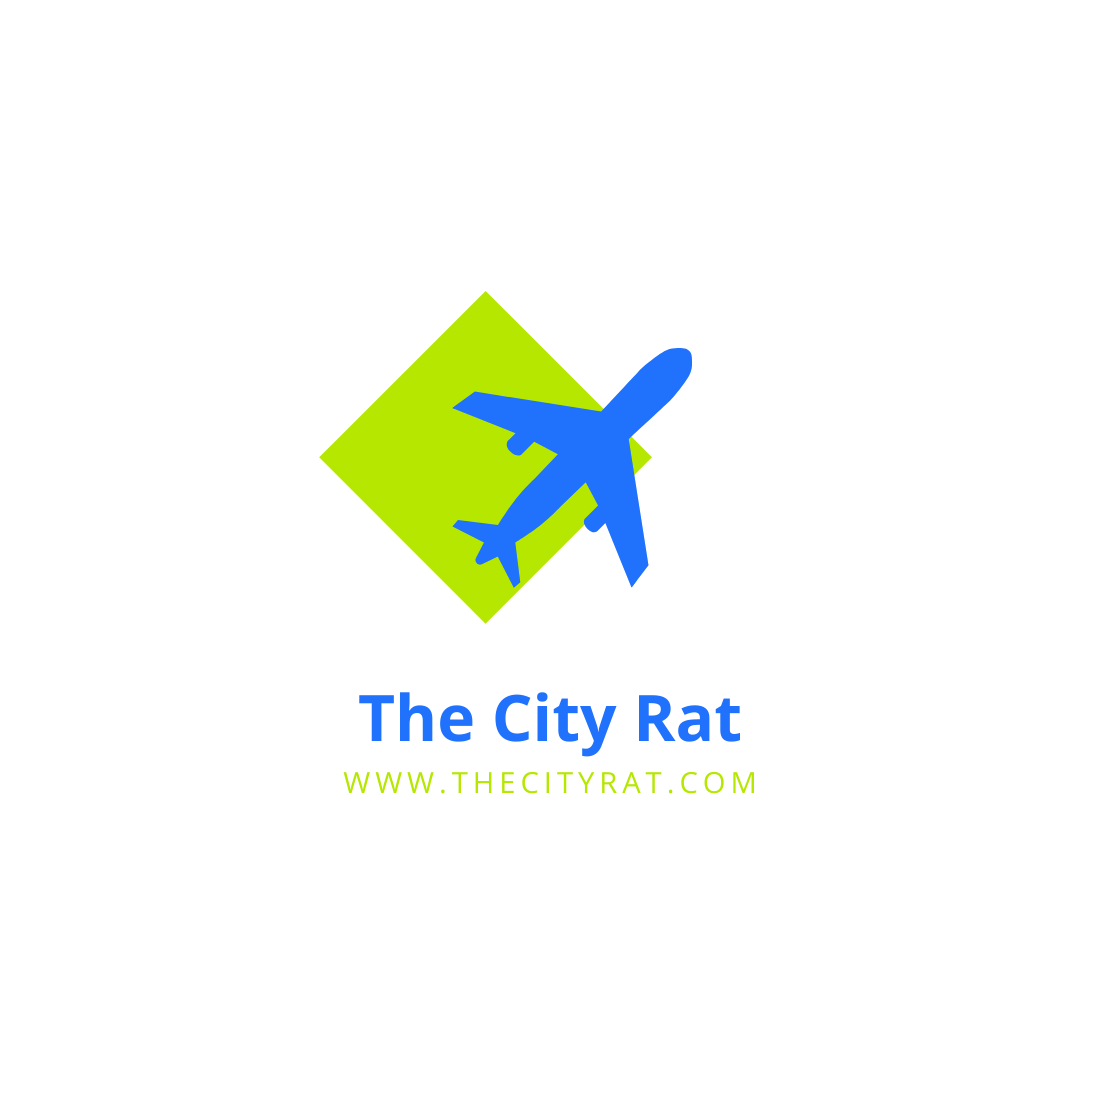 The City Rat